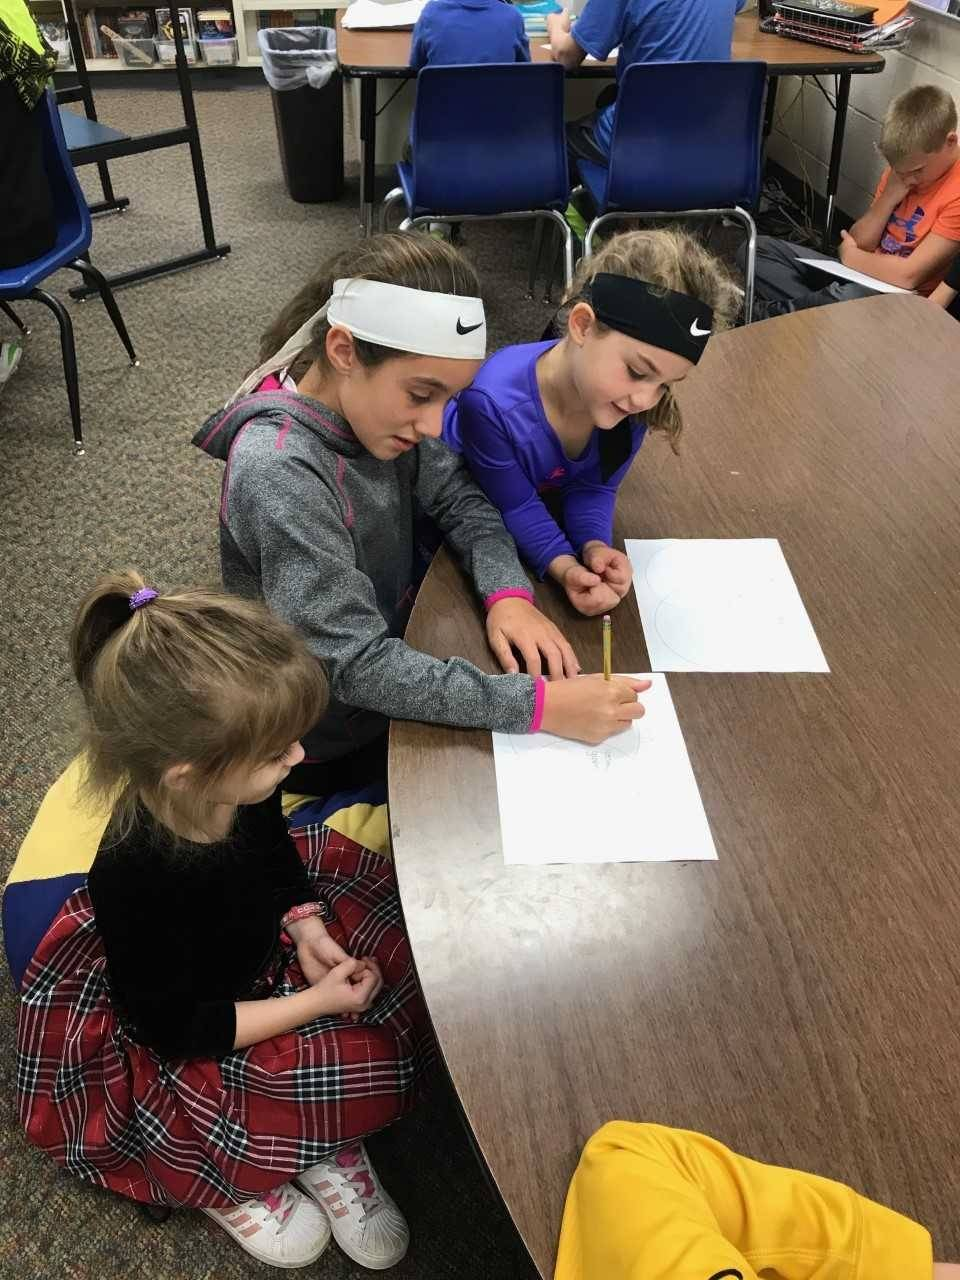 5th grade student helping two kindergarten students